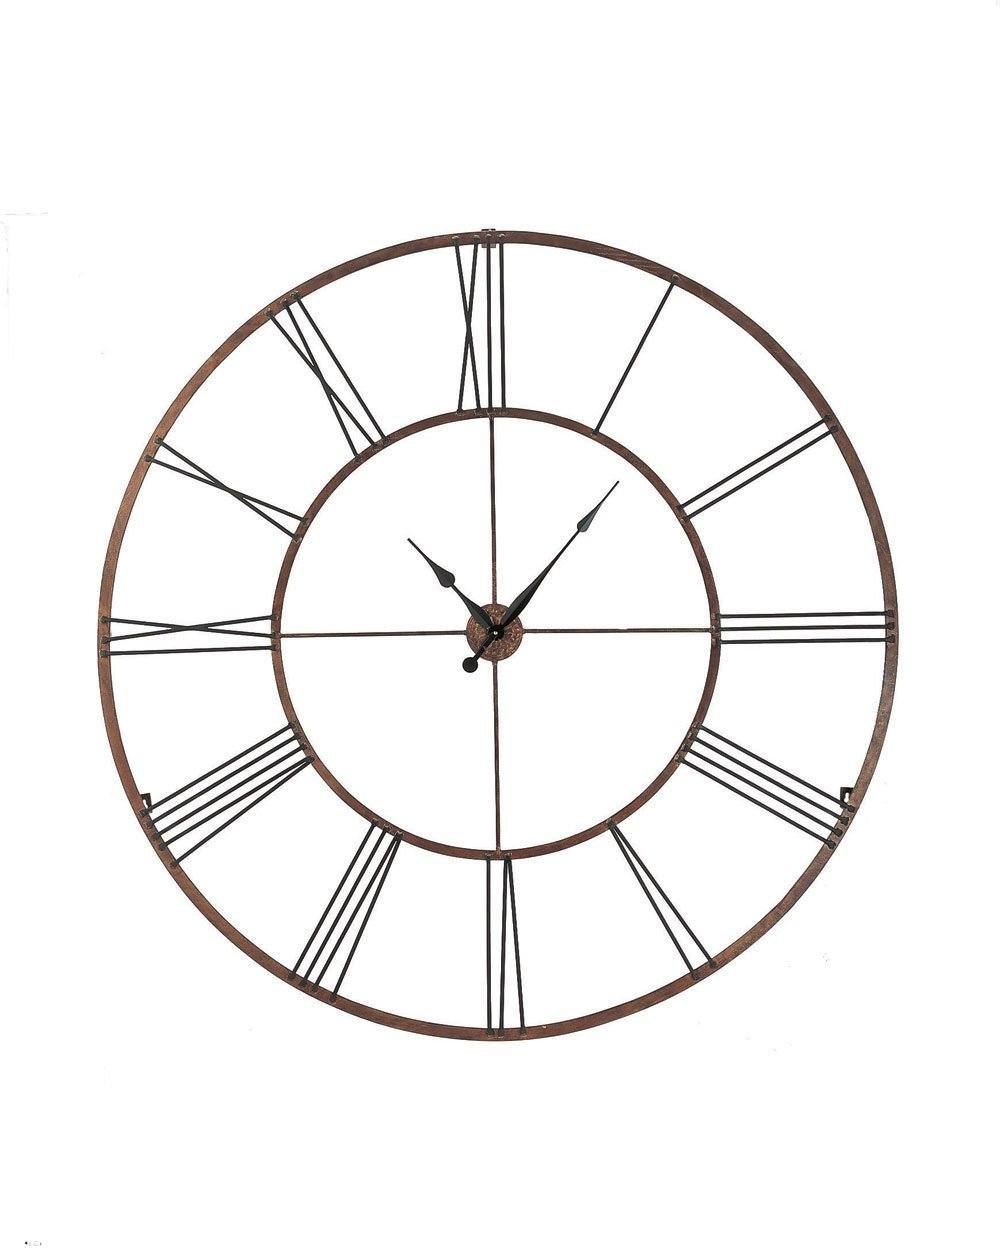 Total fab oversized giant metal wall clocks huge 50 modern iron metal wall clock with roman numerals amipublicfo Choice Image